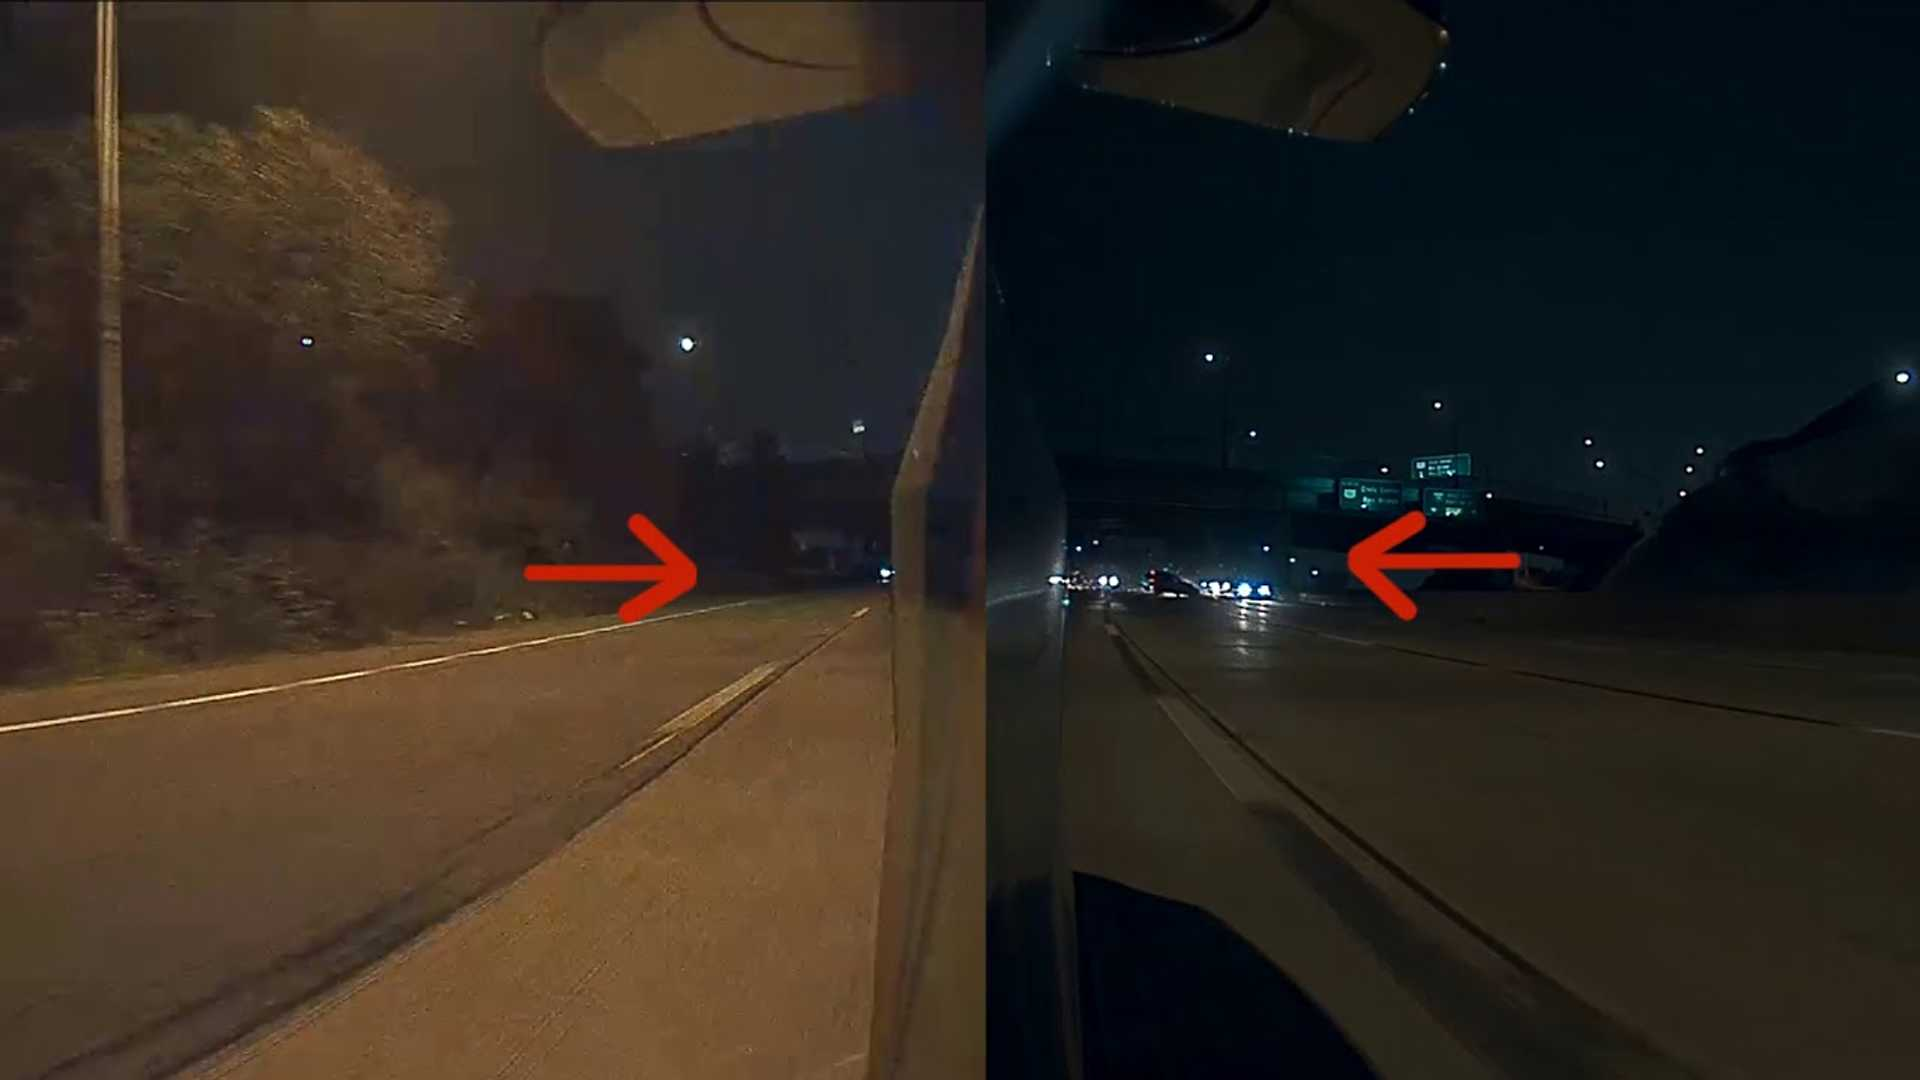 Tesla Dashcam Captures Crazy Multi-Car Spinout Crash: Video